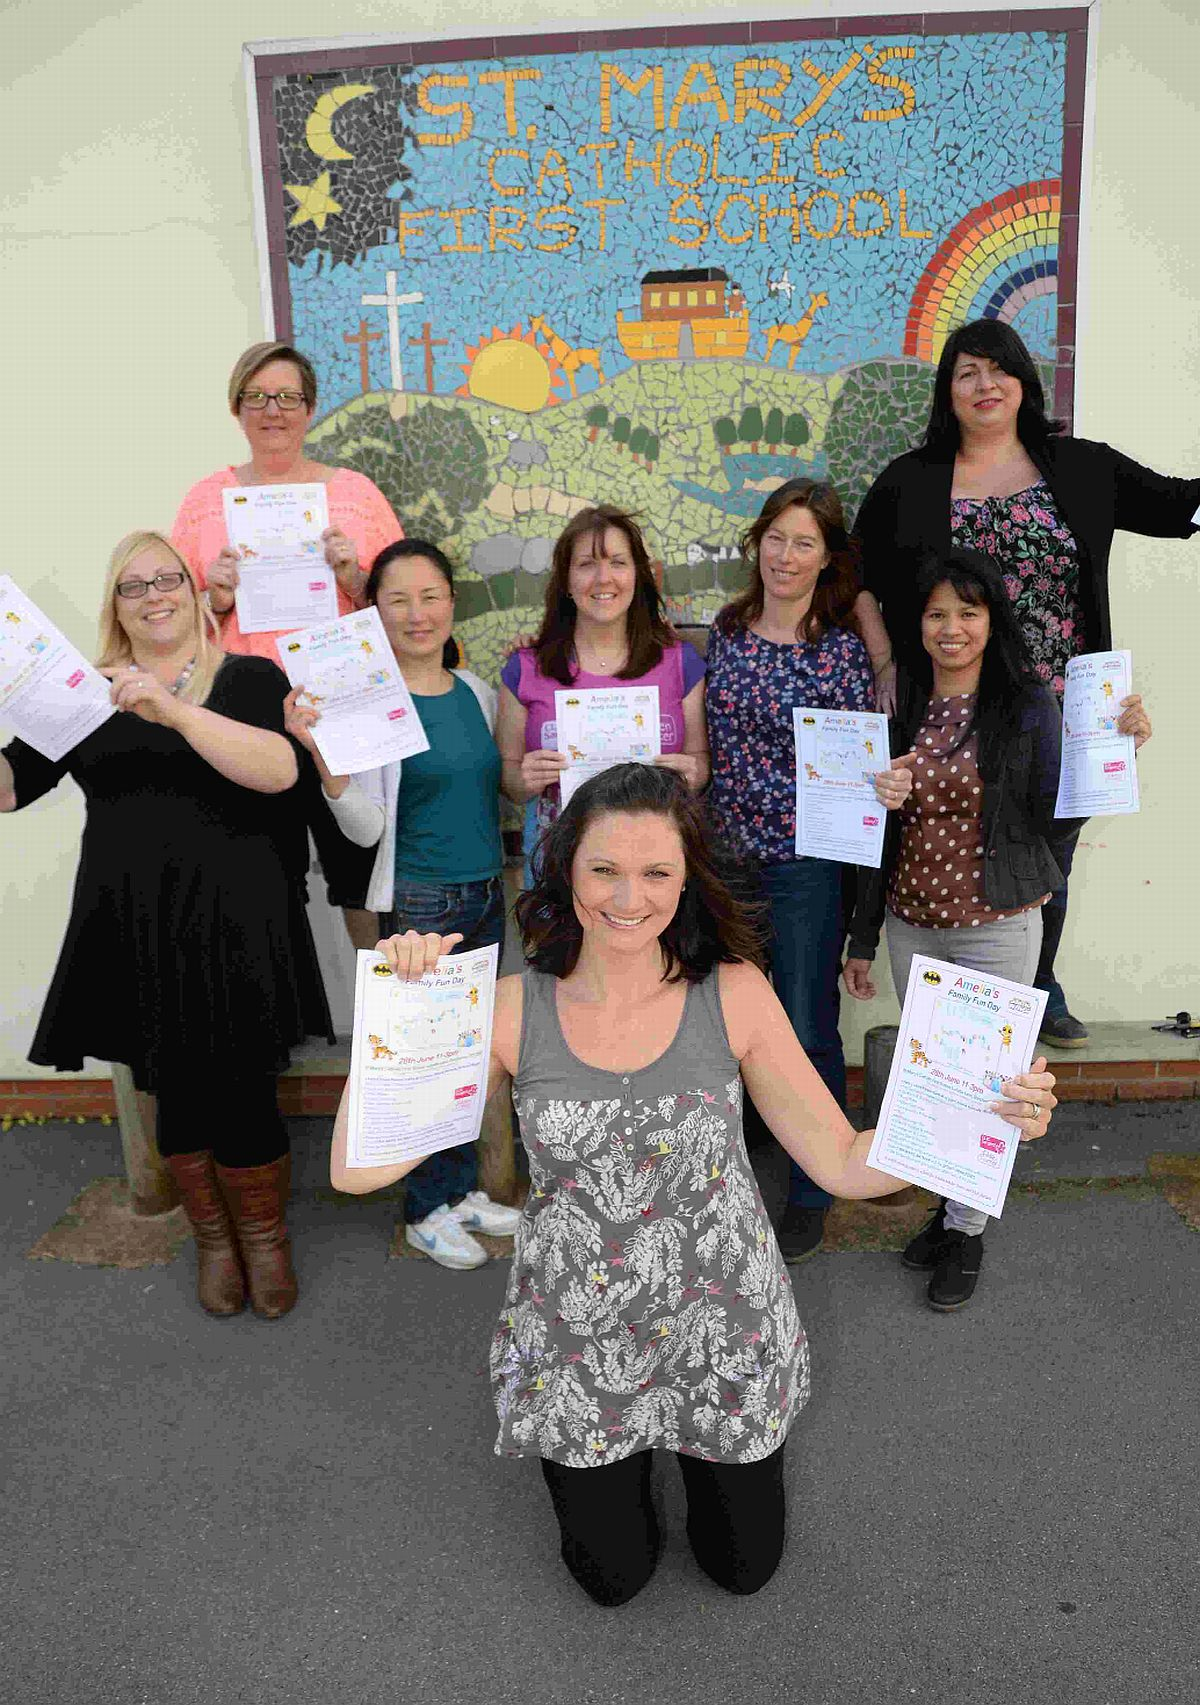 PULLING TOGETHER: Holly Parkin with friends who are organising a family fun day